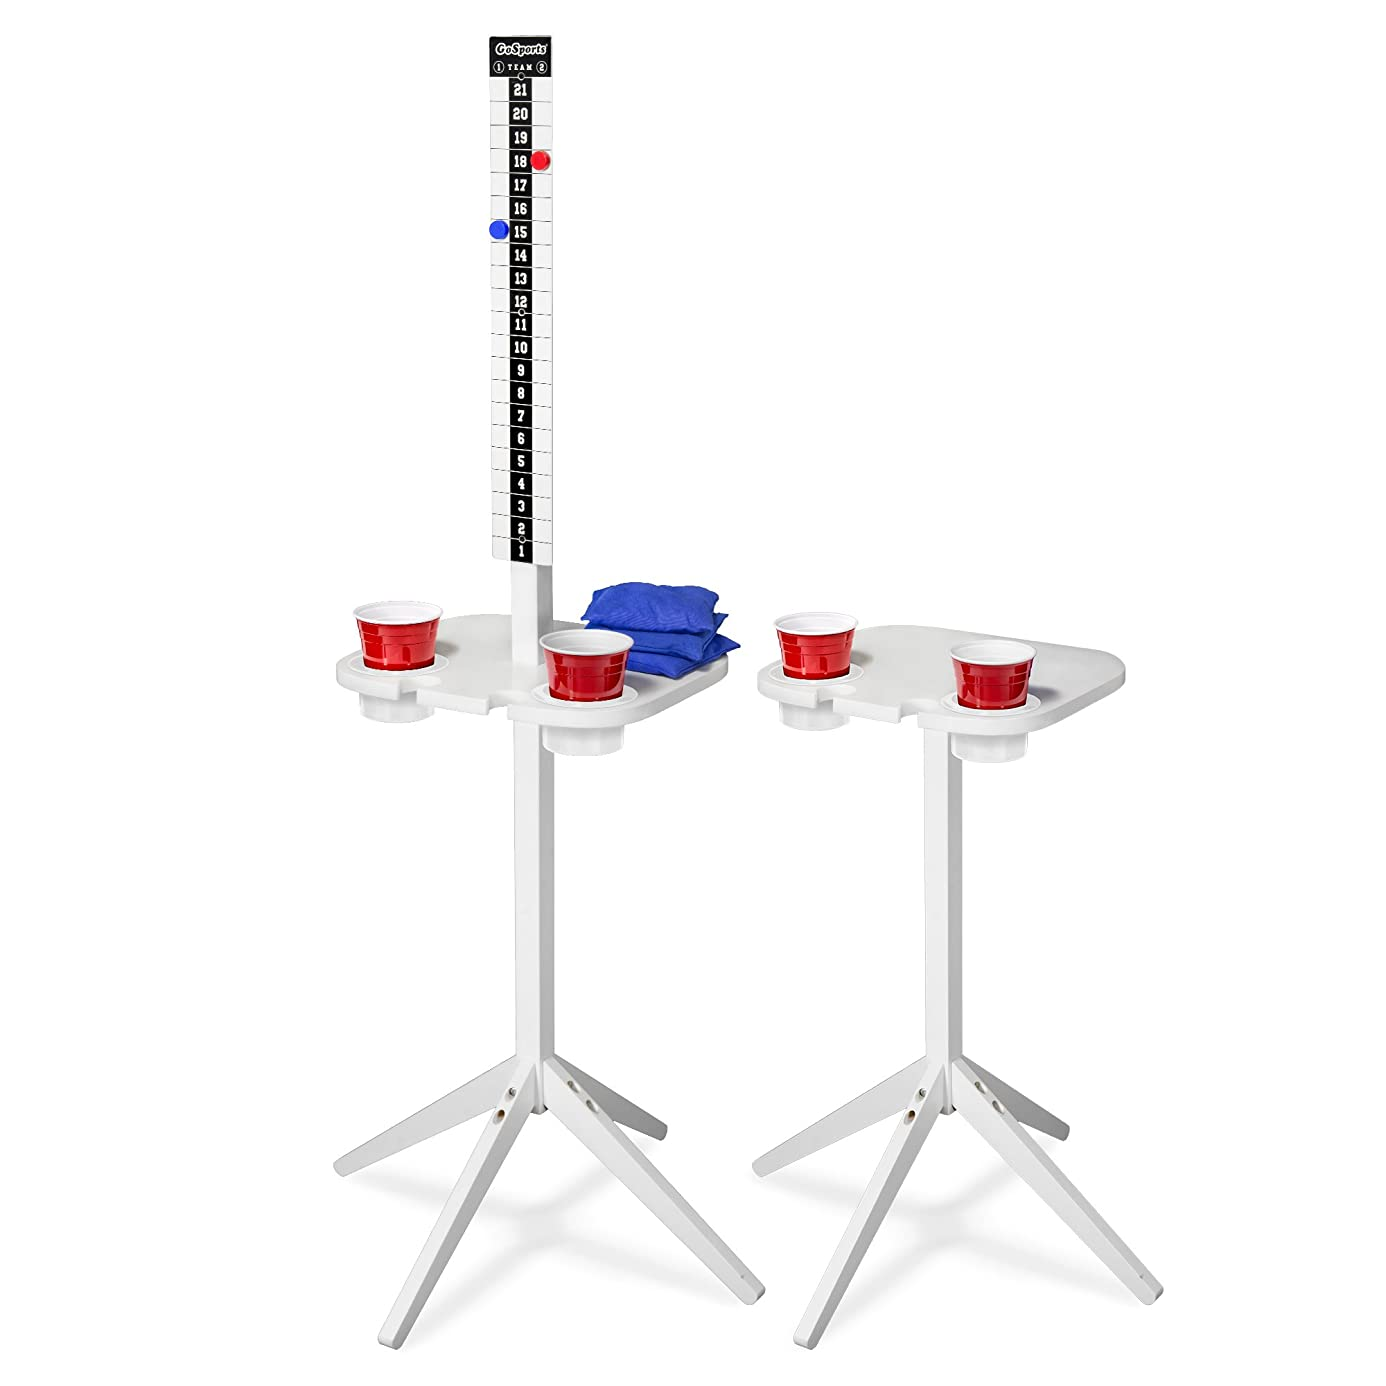 GoSports ScoreCaddy Outdoor Scoreboard Keeper with Drink Holders – Perfect Accessory for Backyard Cornhole and Yard Games